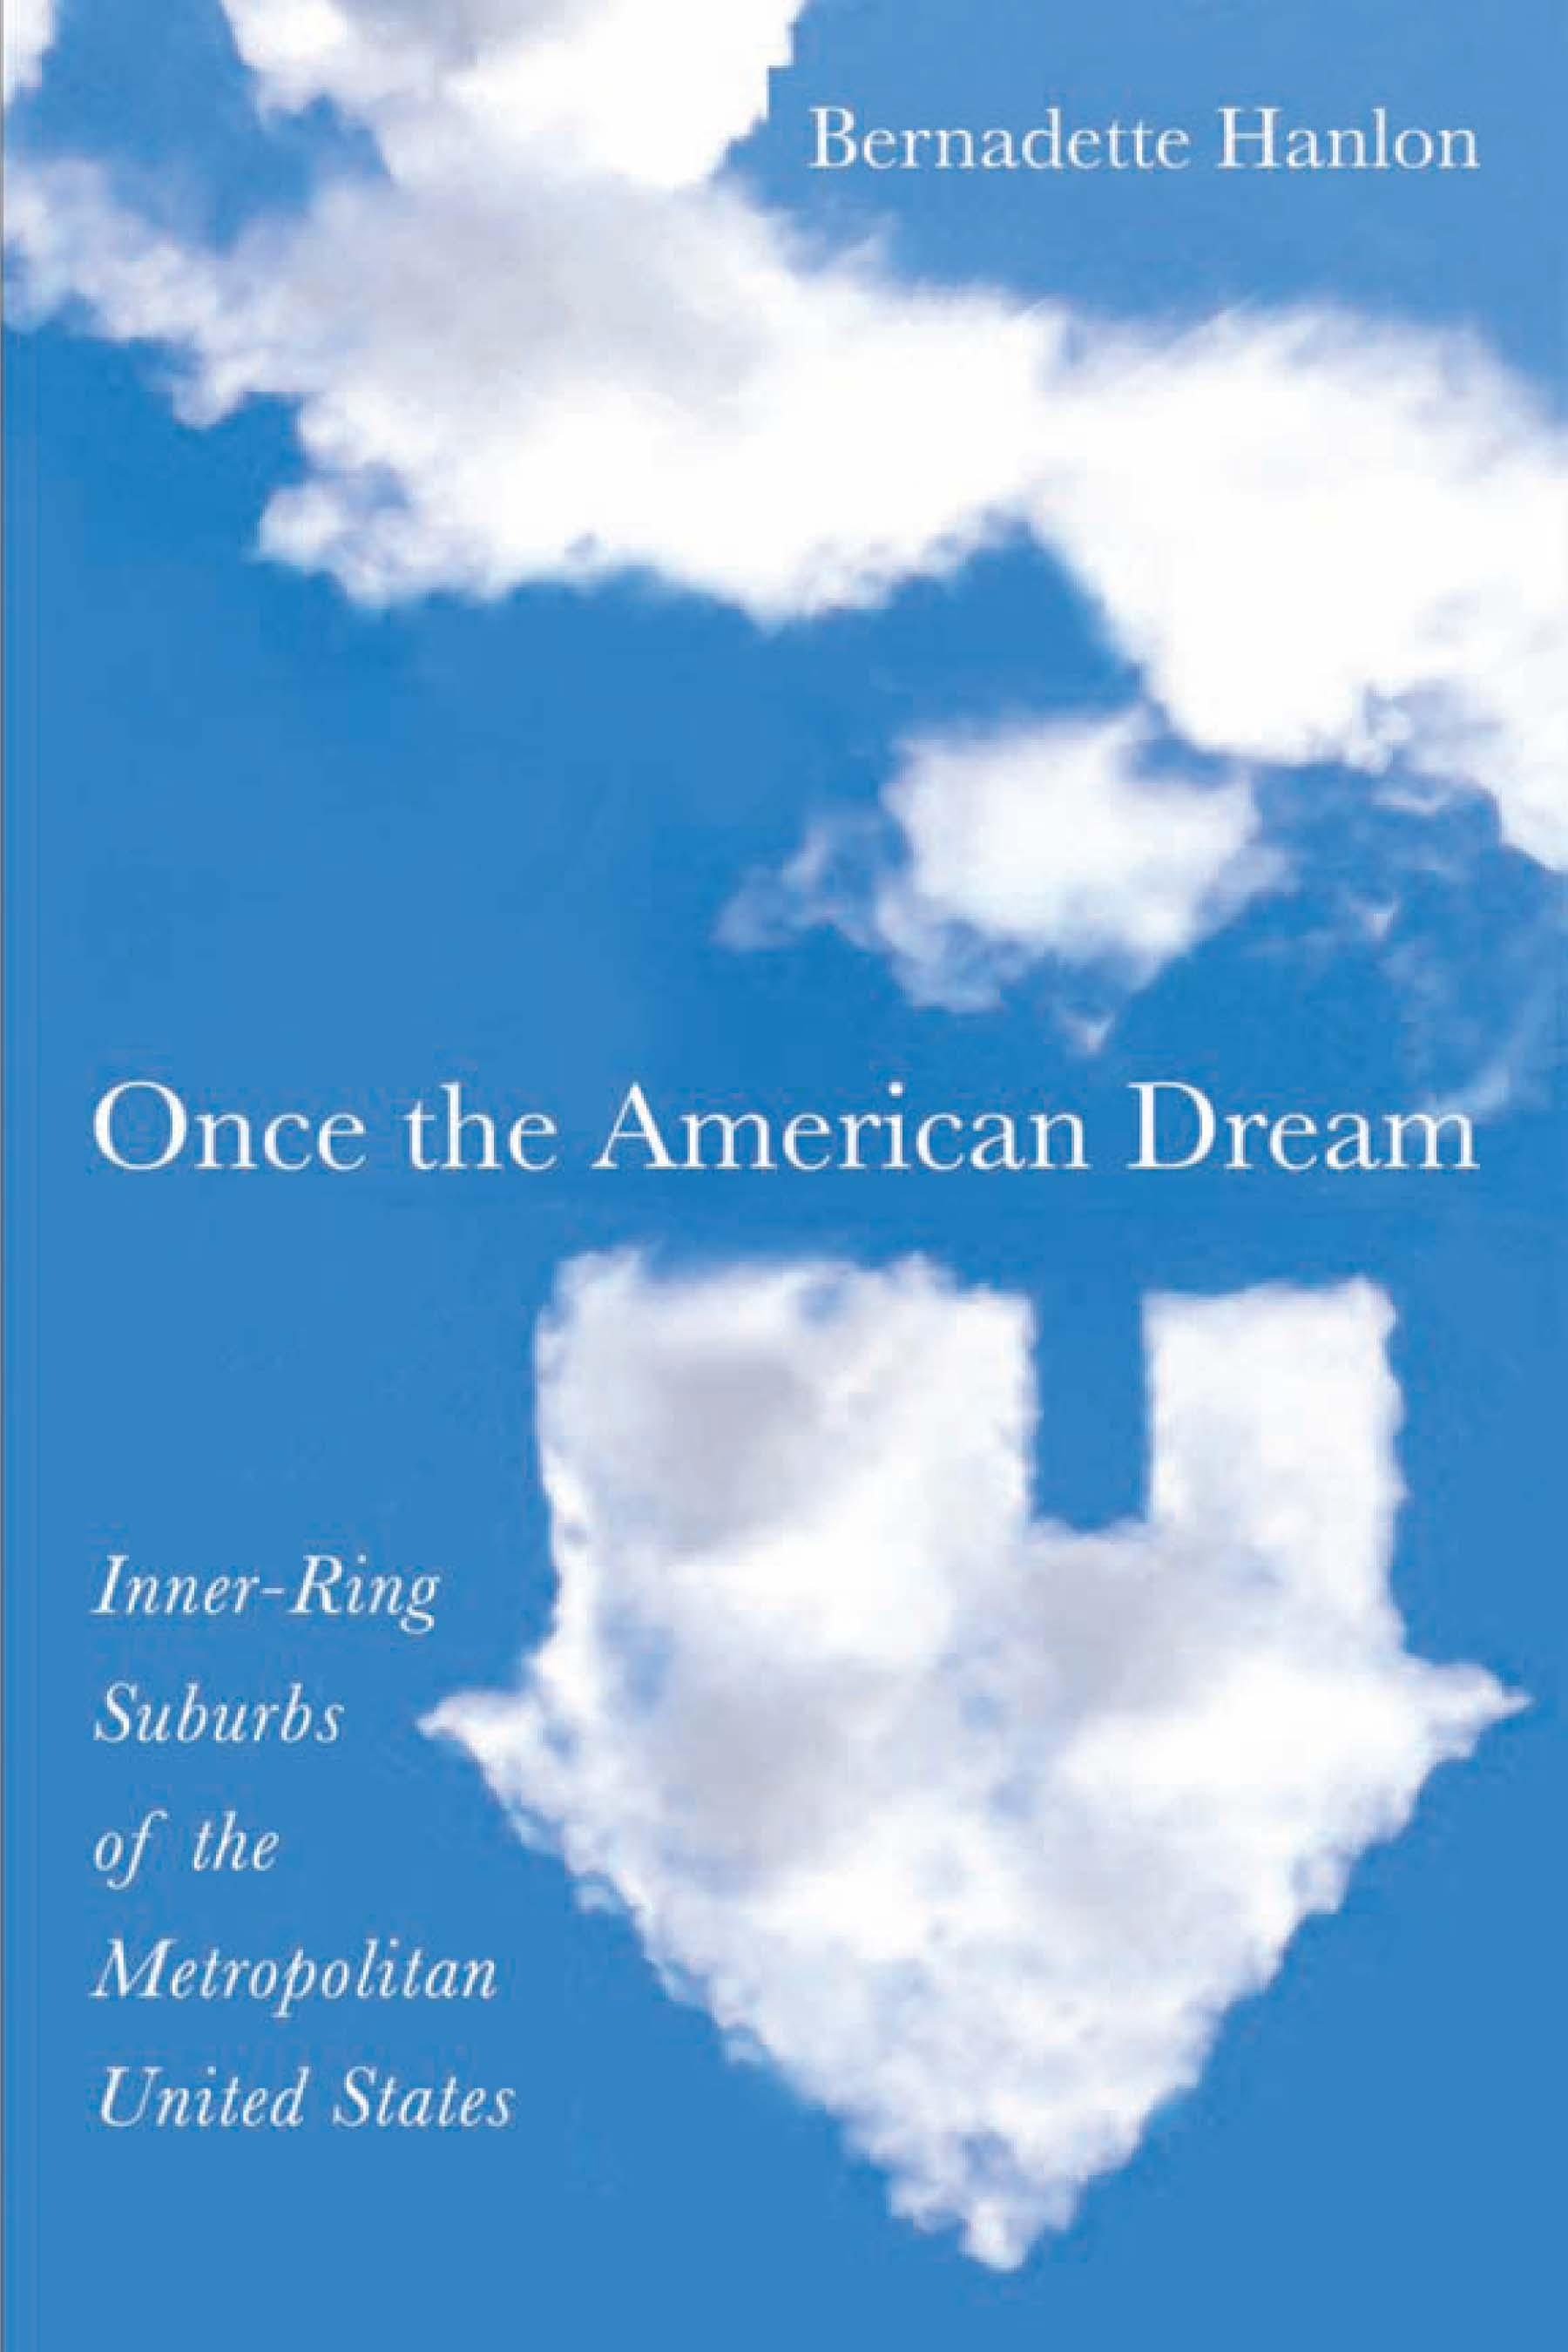 Once the American Dream: Inner-Ring Suburbs of the Metropolitan United States EB9781592139385